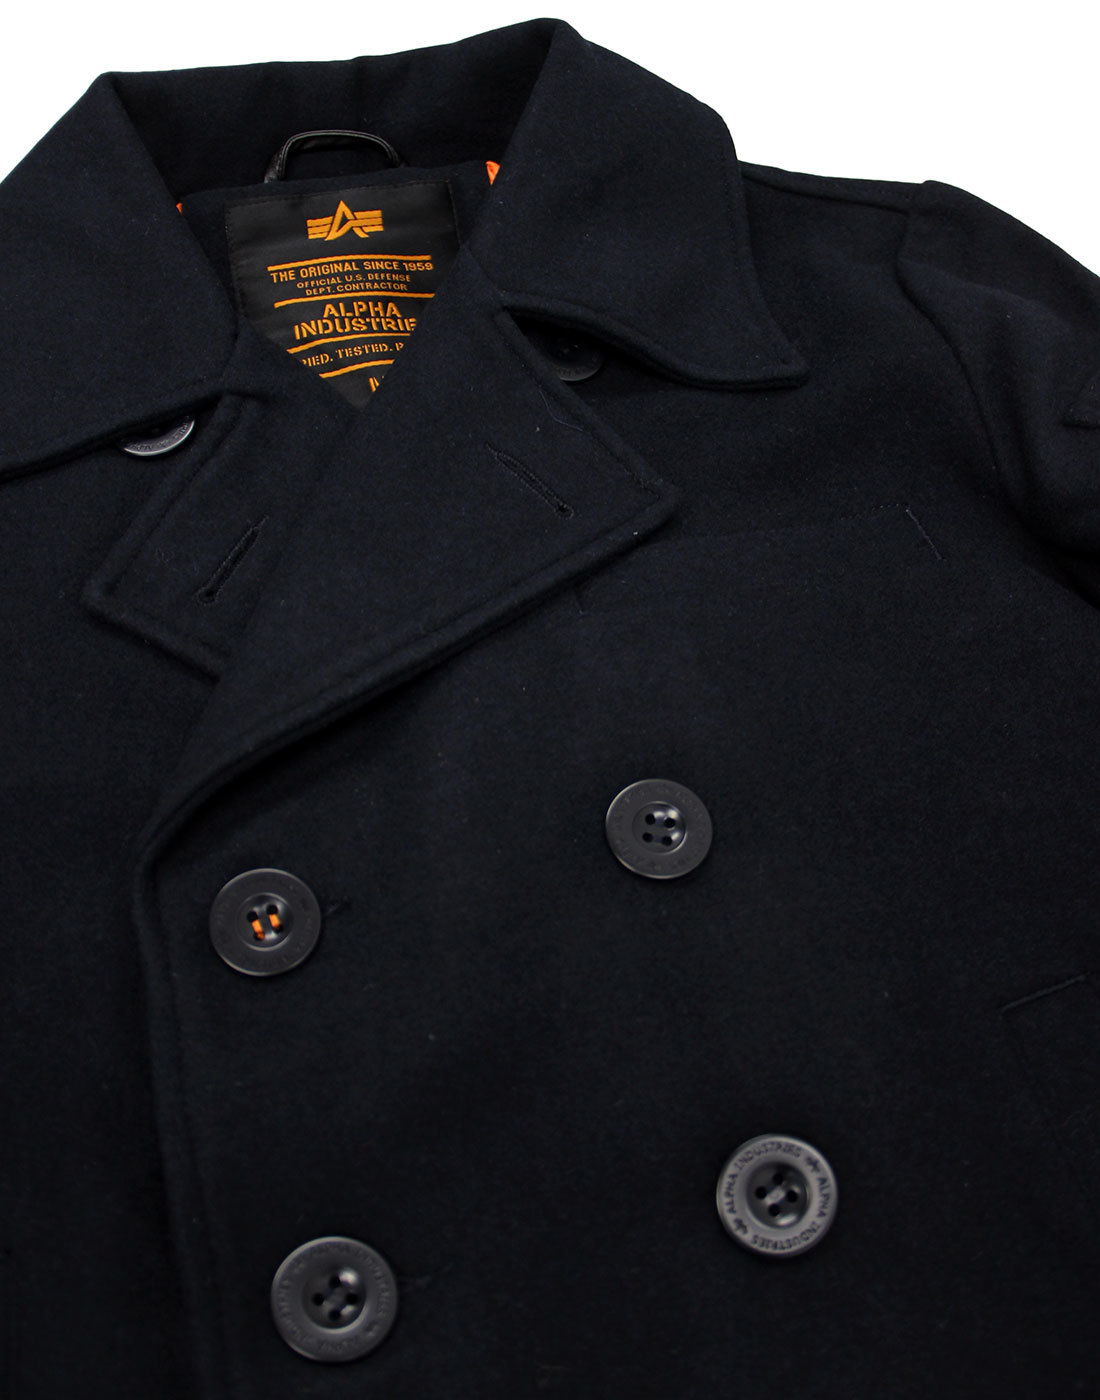 the best attitude buy real reliable reputation ALPHA INDUSTRIES Retro Mod Military VF Pea Coat